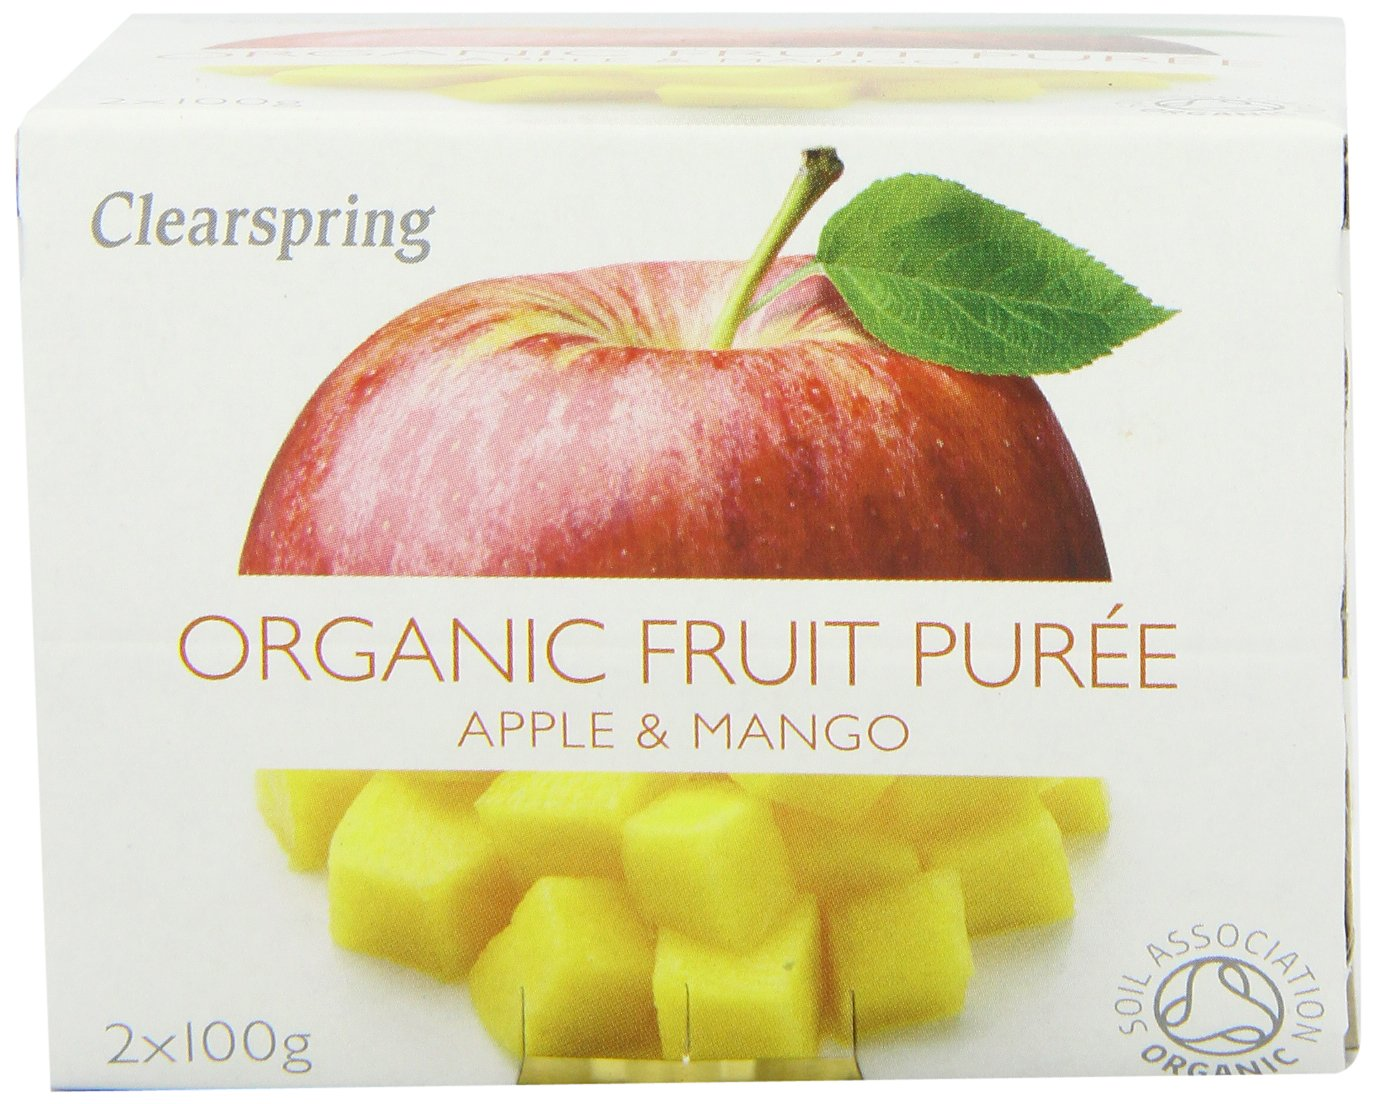 Clearspring Organic Apple and Mango Fruit Puree 2 X 100 g (Pack of 12) by Clearspring (Image #4)